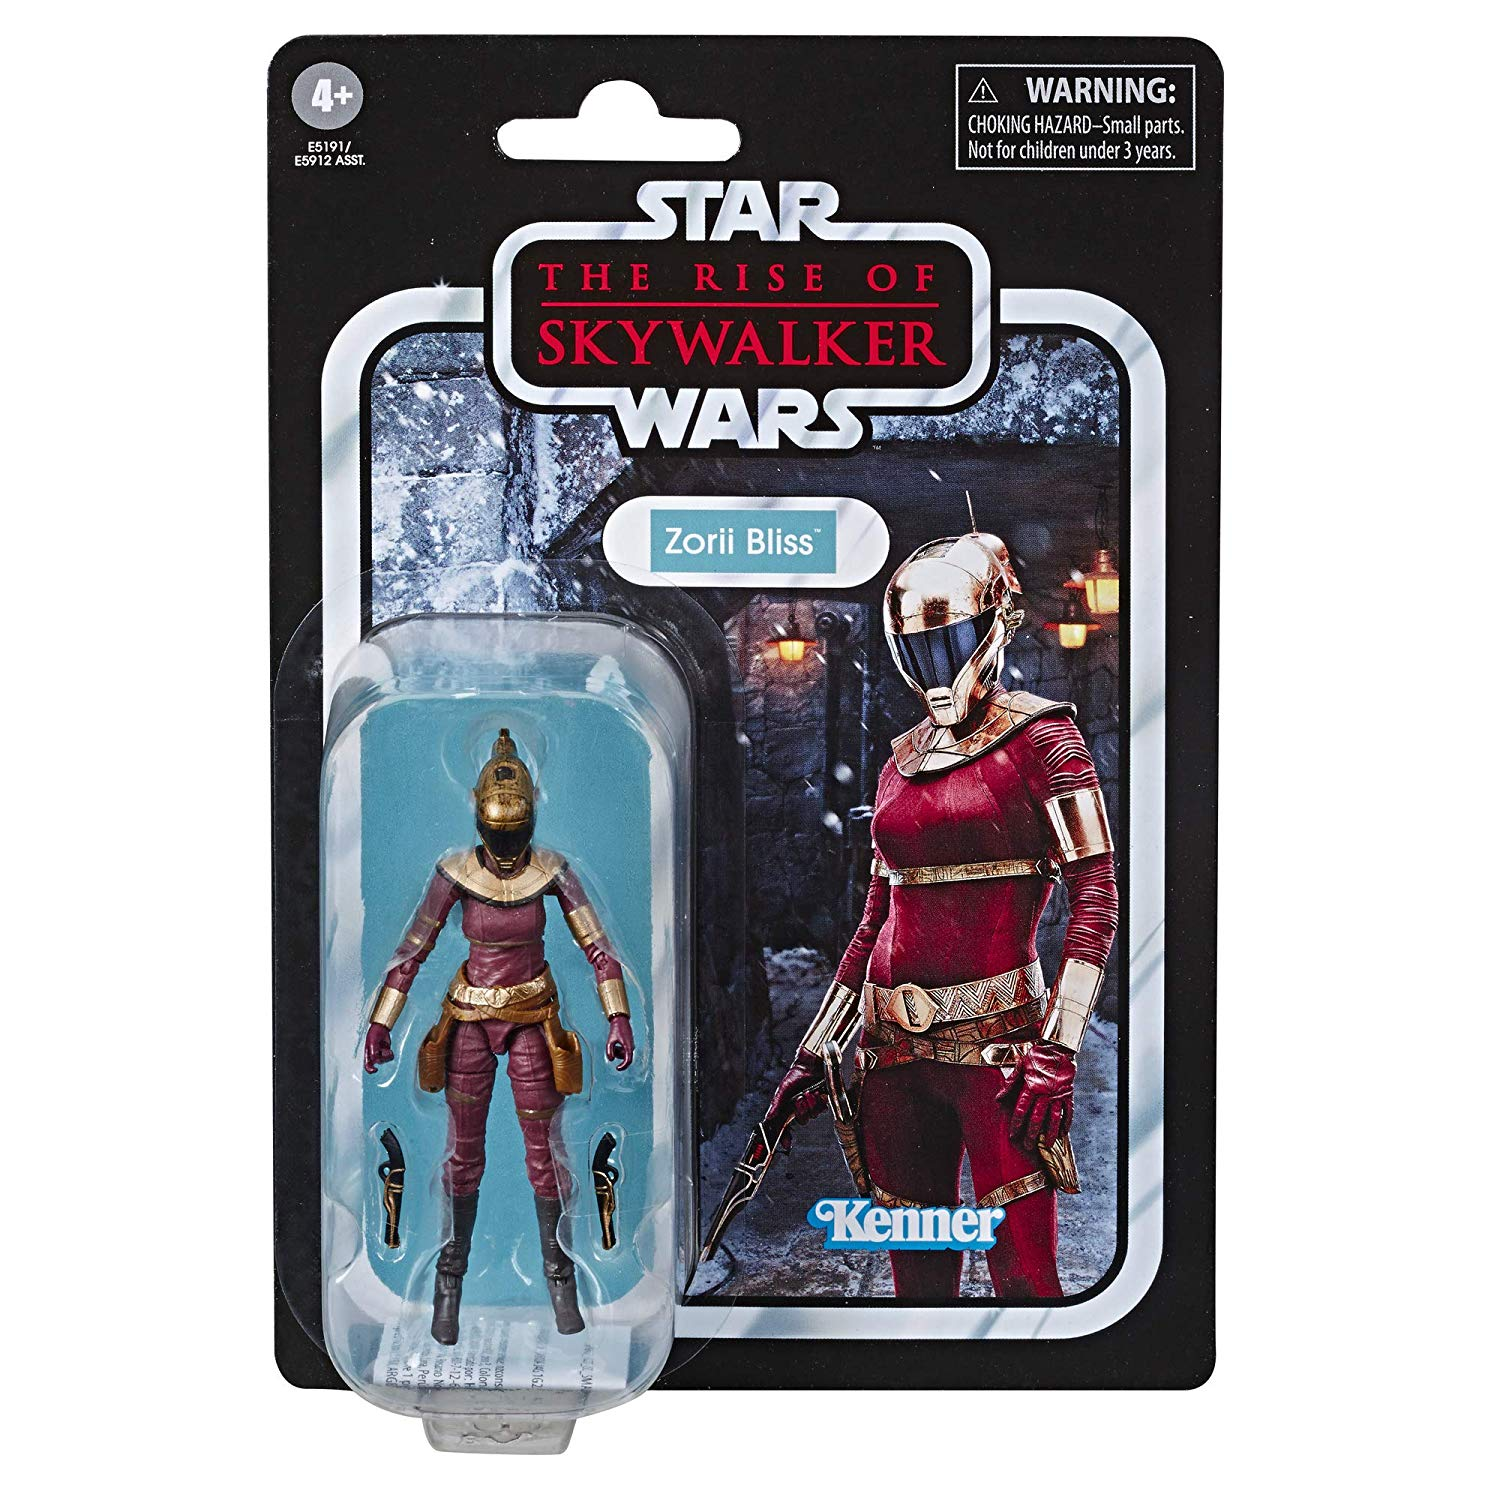 "81Tv5OcgR L. SL1500 - Star Wars The Vintage Collection The Rise of Skywalker Zorii Bliss Toy, 3.75"" Scale Action Figure, for Kids Ages 4 & Up"